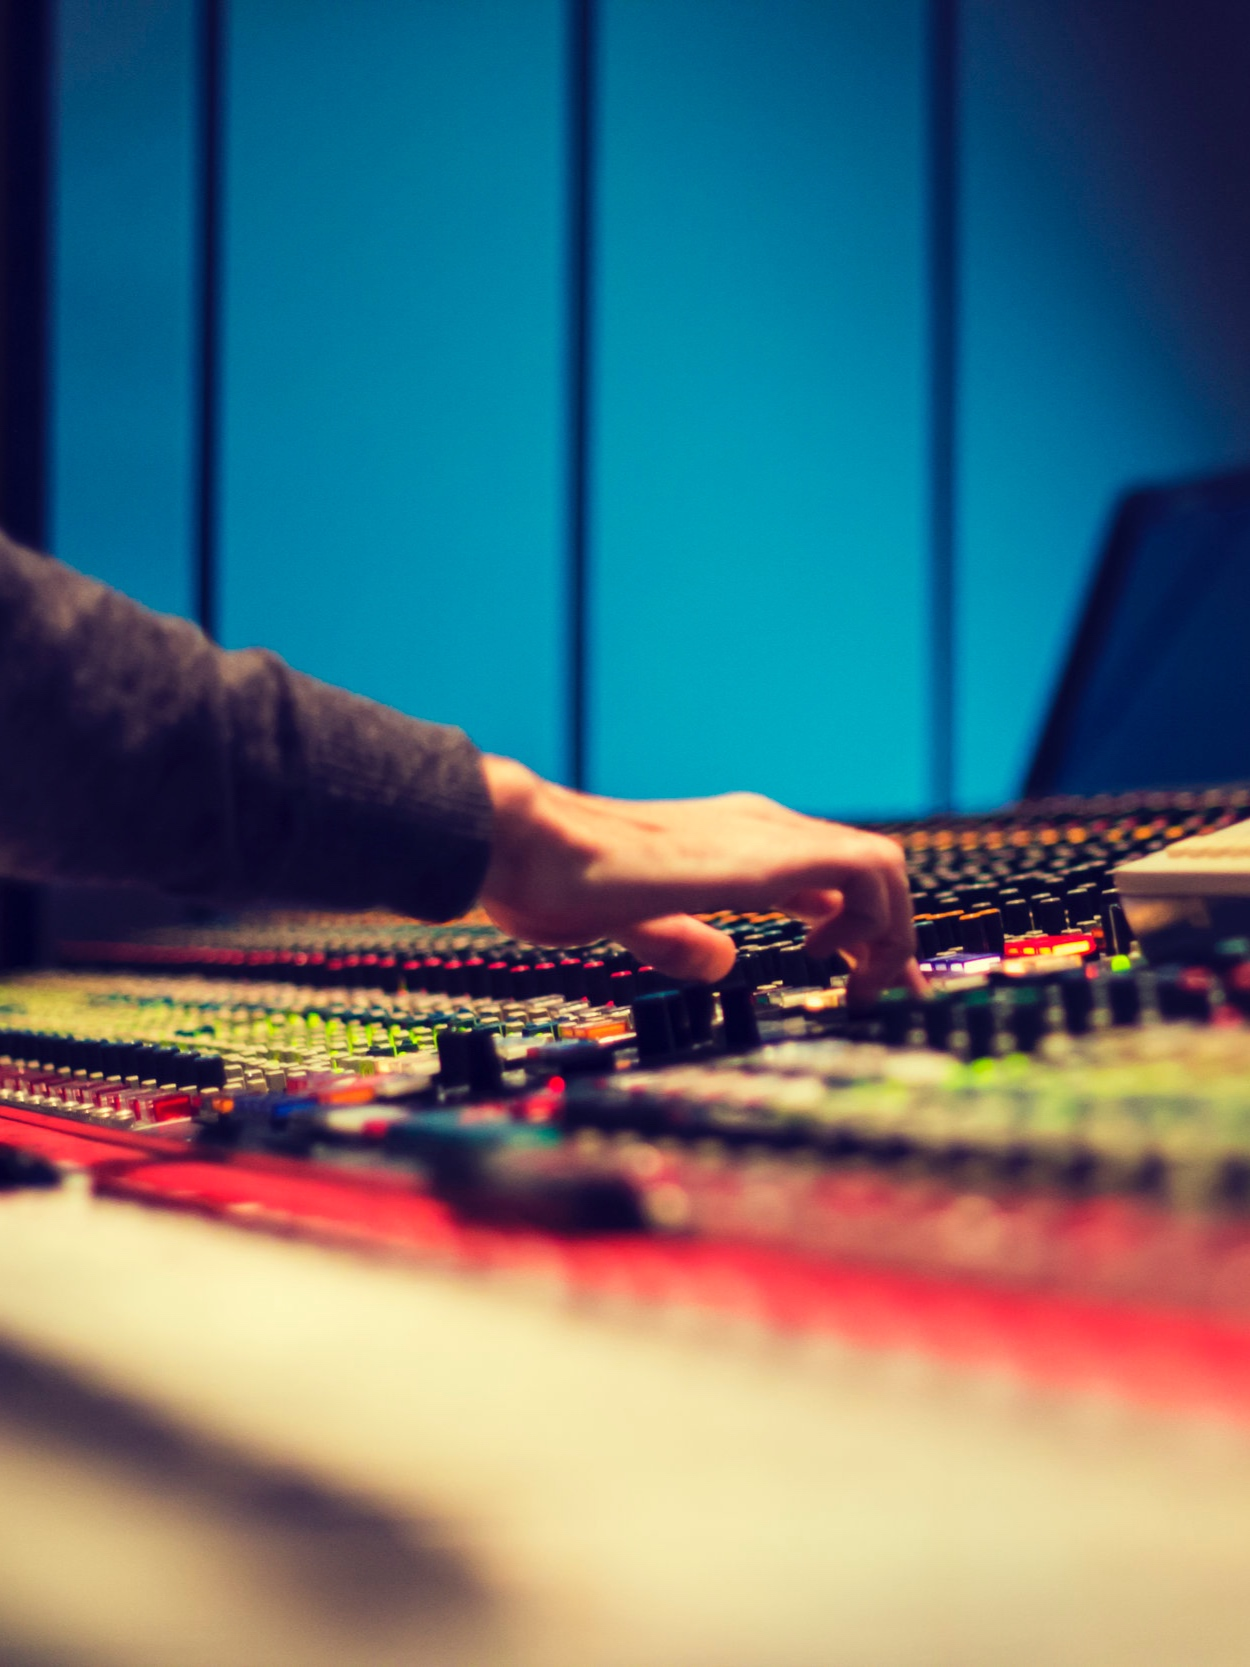 Mixing & Mastering - Starting at $149 / SongAll our demos come to you mixed and mastered, but if you have a song you need us to professionally mix for you, don't hesitate to contact us! Send us the stems from a previous project you have worked on, and we'll take care of the rest!